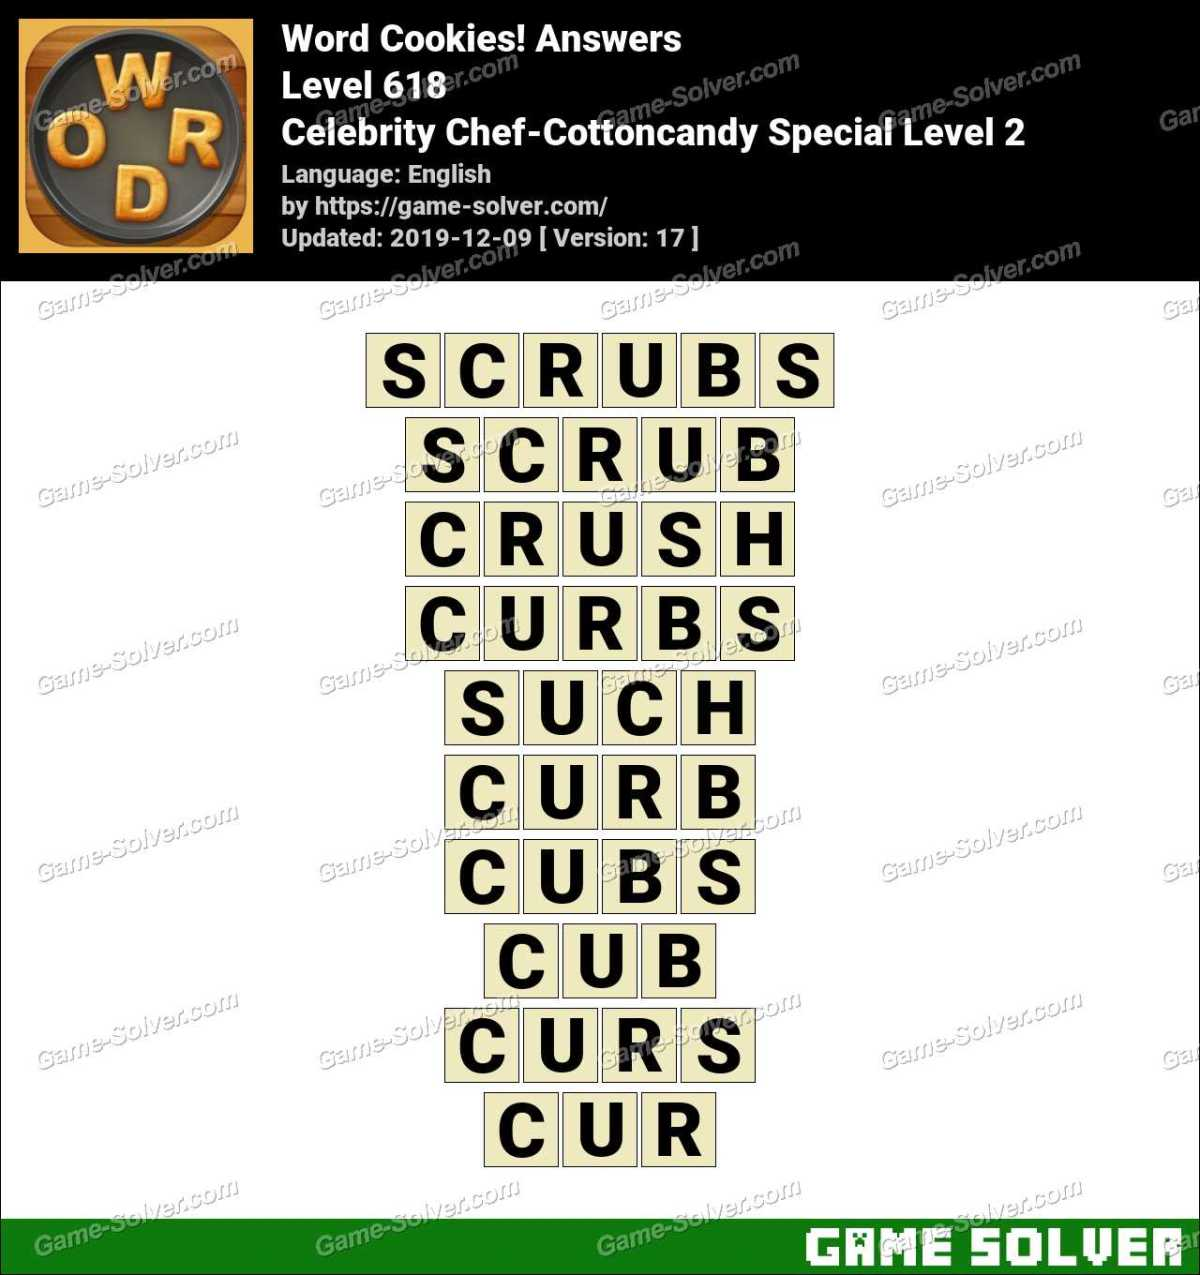 Word Cookies Celebrity Chef-Cottoncandy Special Level 2 Answers